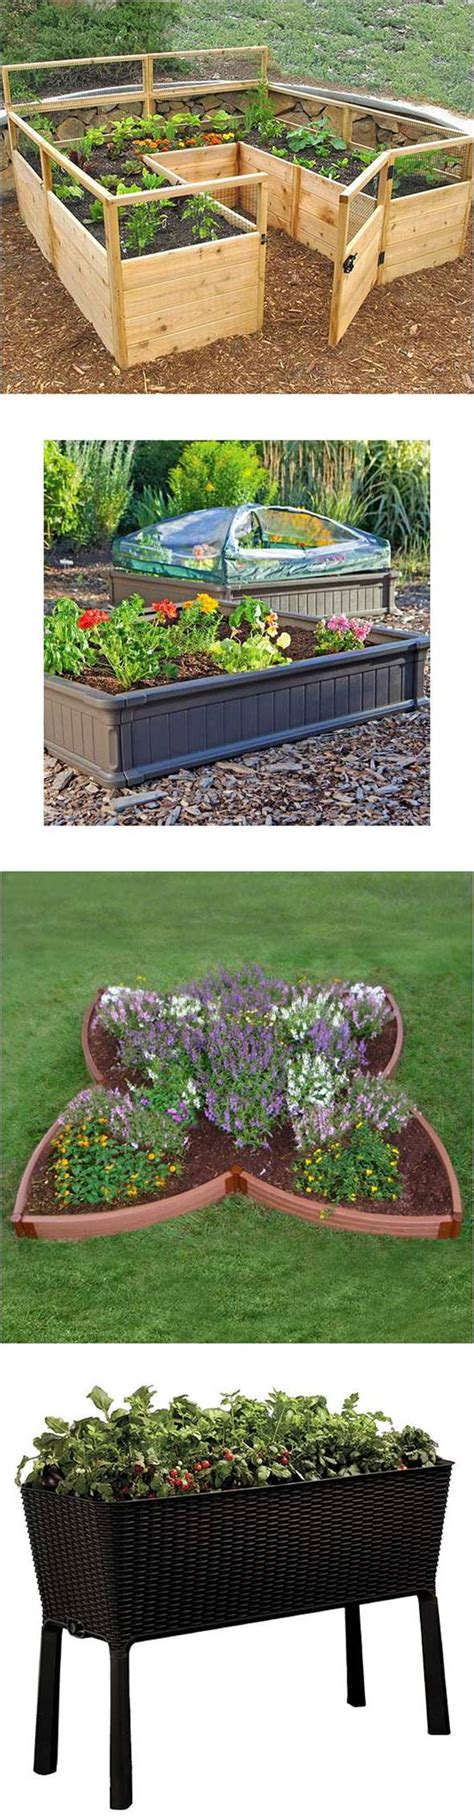 easy raised garden bed 13 raised garden bed kits that are easy to assemble